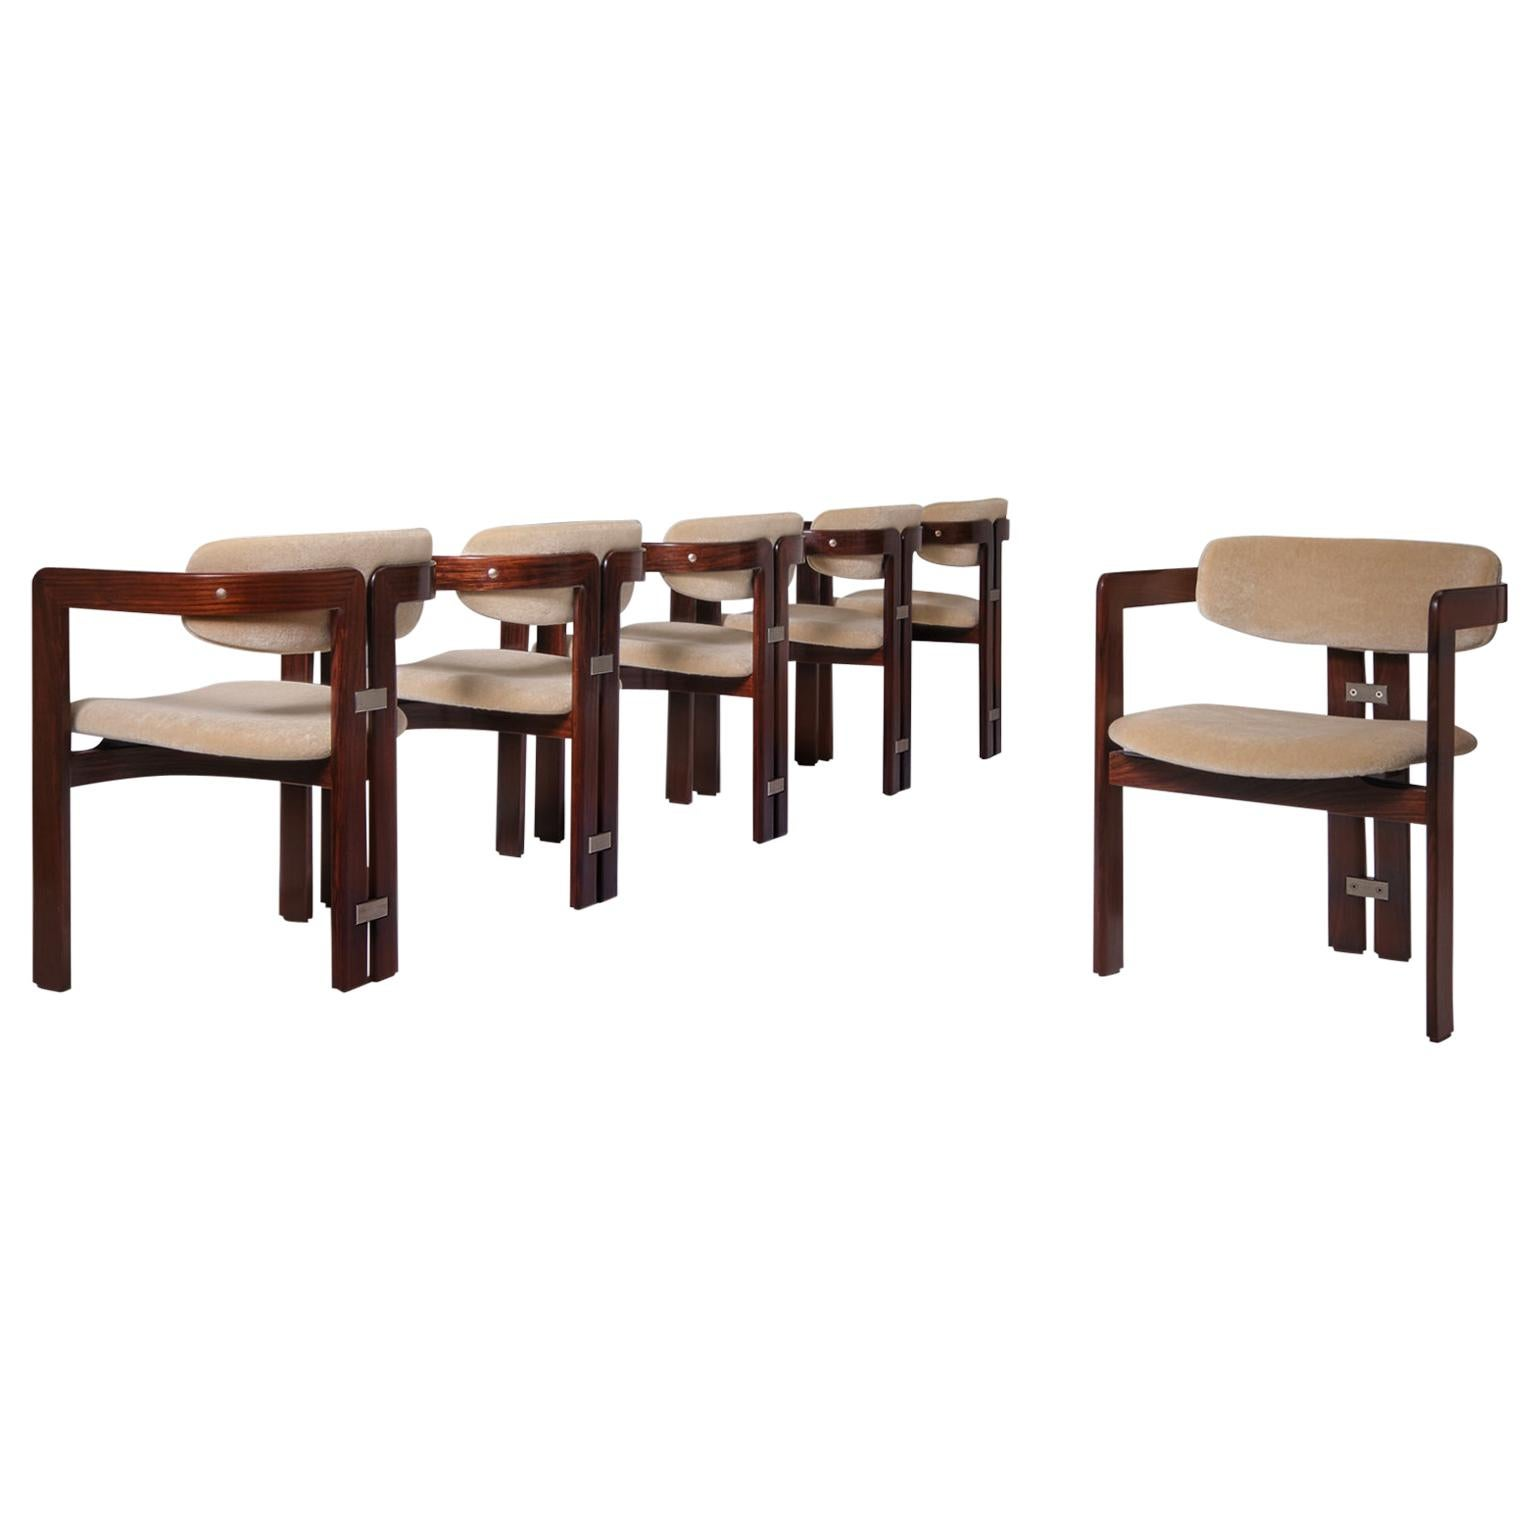 Pamplona Dining Chairs by Augusto Savini in Rosewood and Mohair